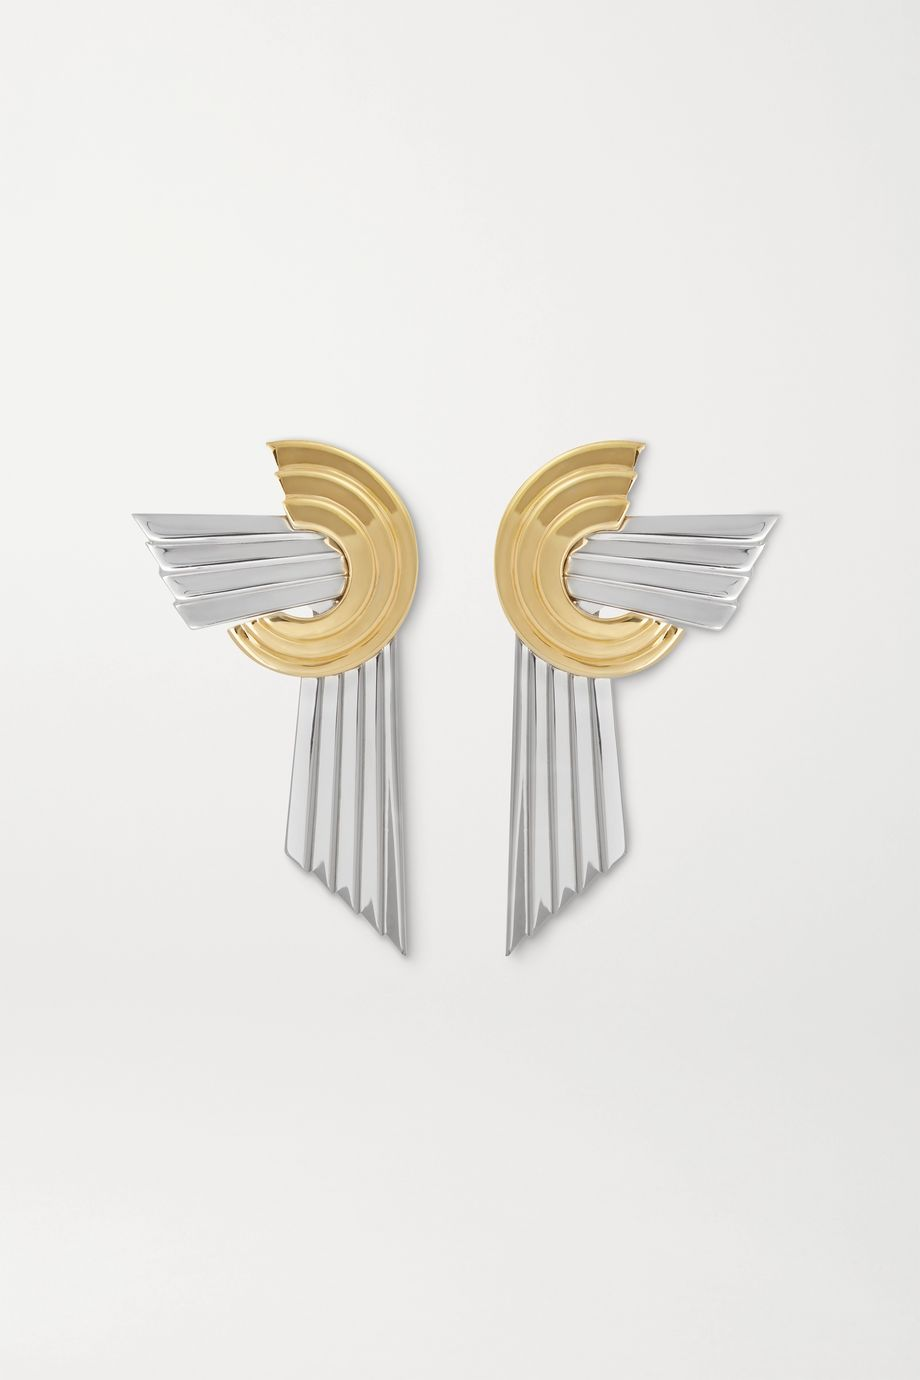 Leda Madera Meryl palladium-plated and gold-plated clip earrings